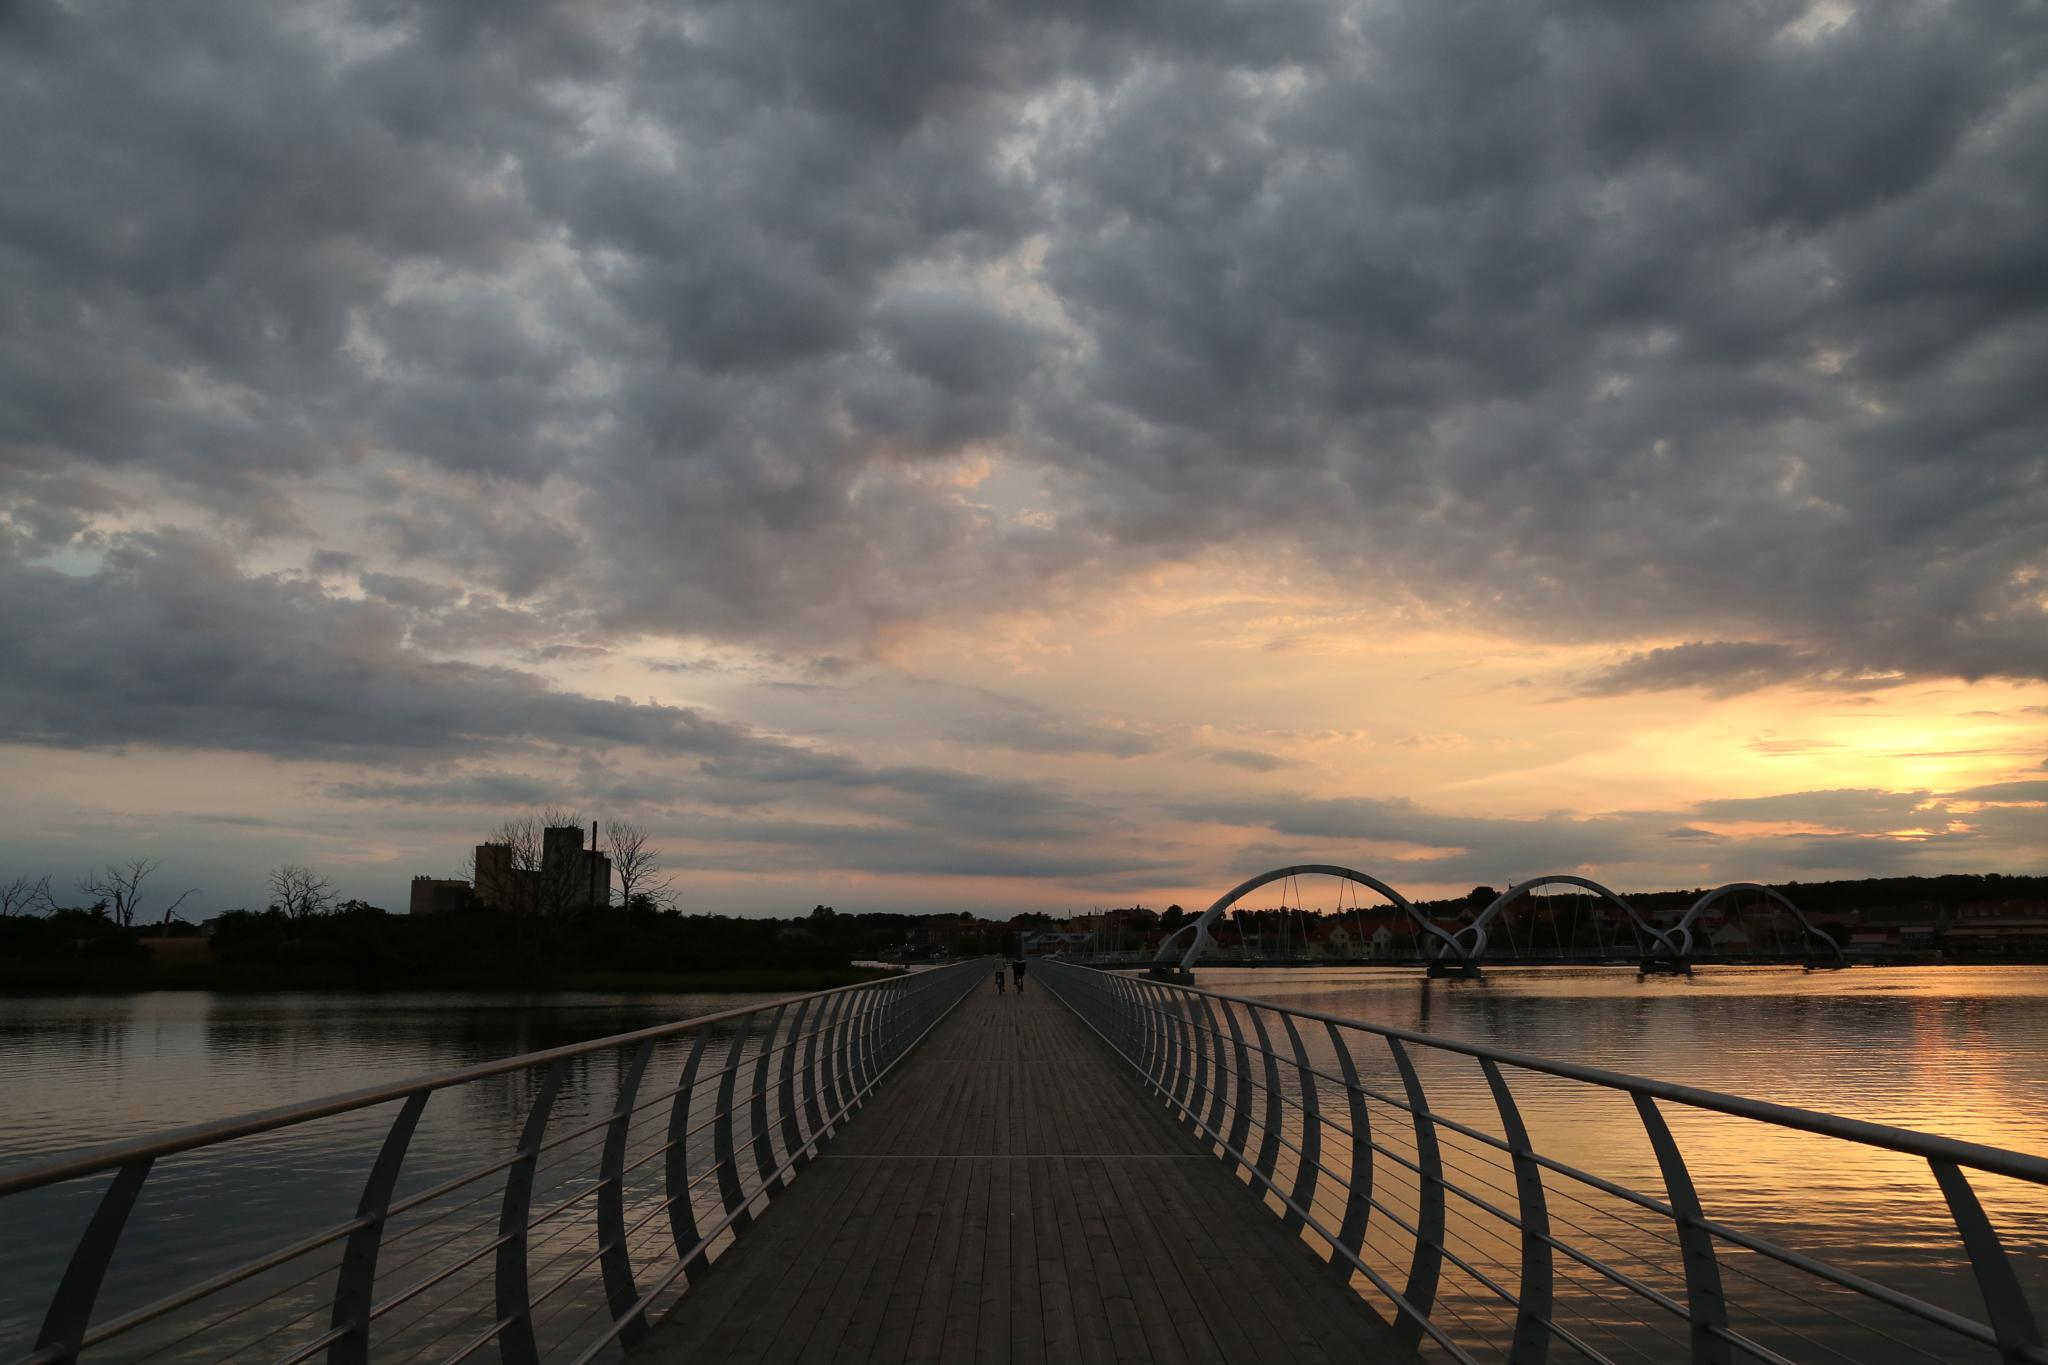 Cloudy sunset over favorite bridge by rejophoto